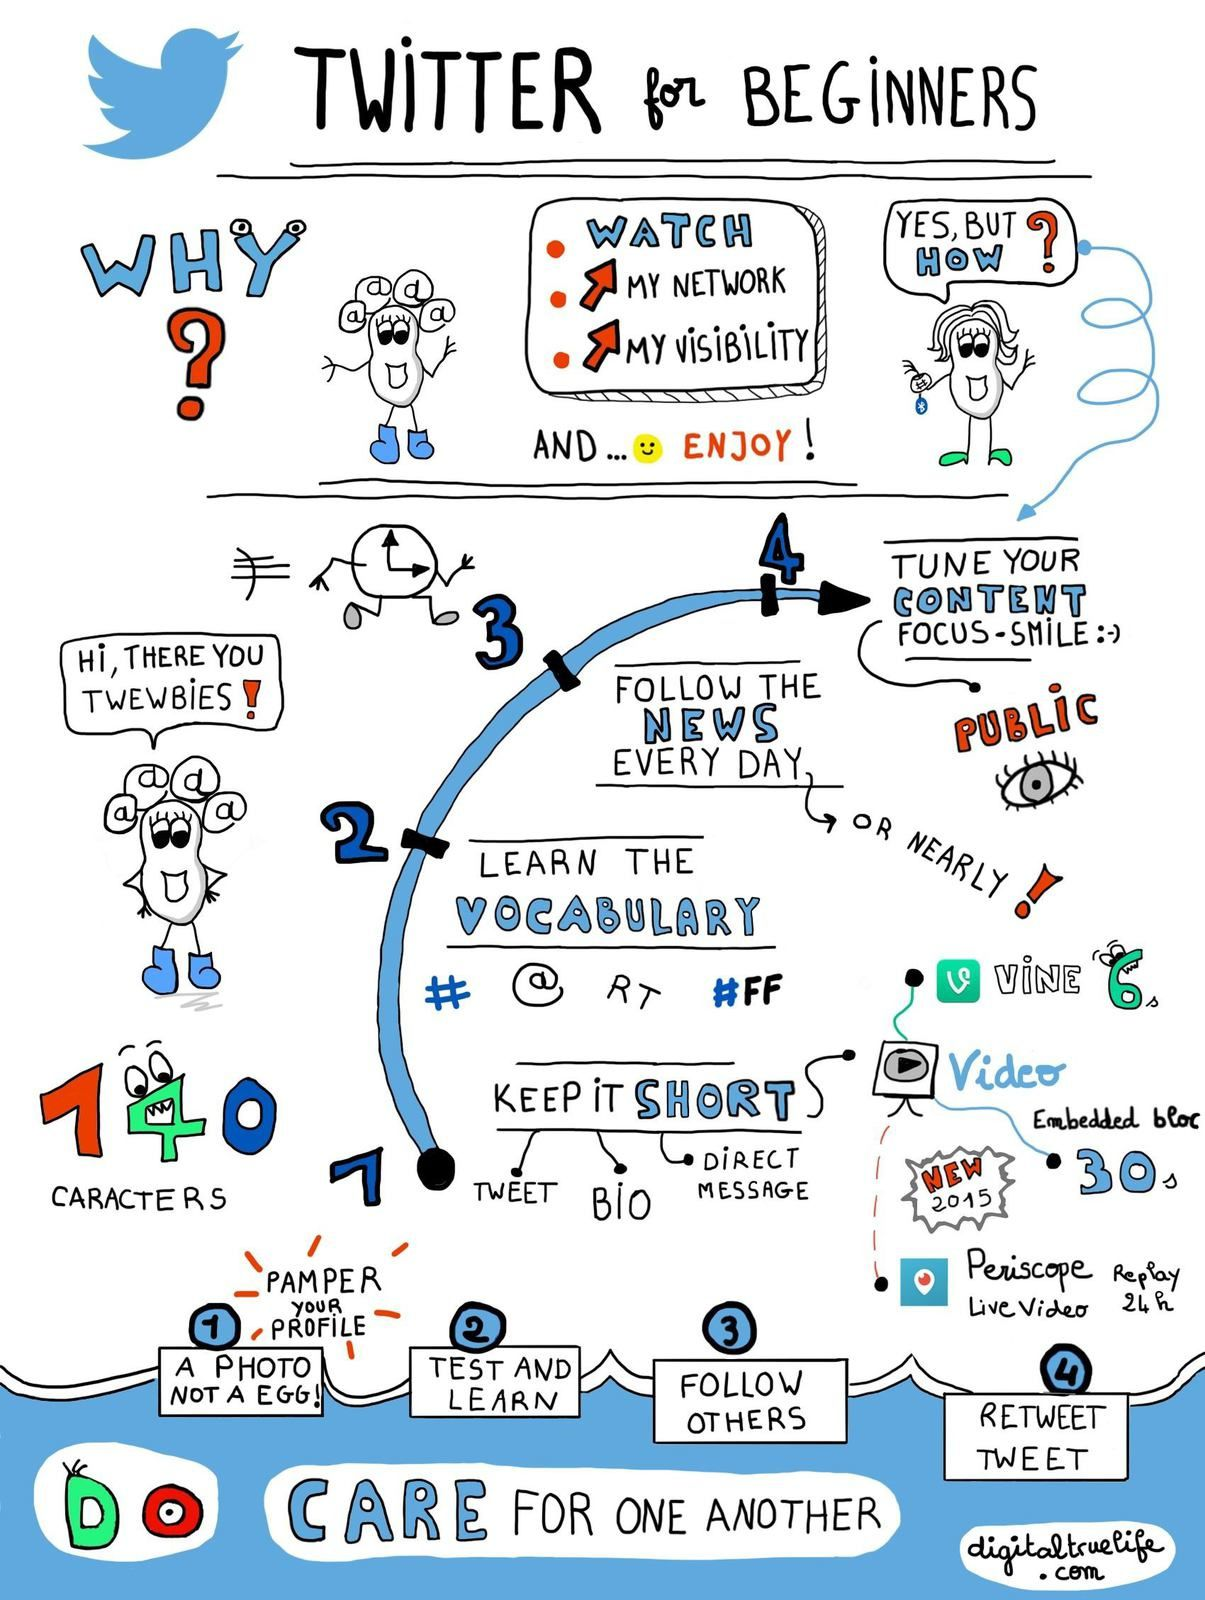 A sketchnote to get started with Twitter! Try it out and have fun!